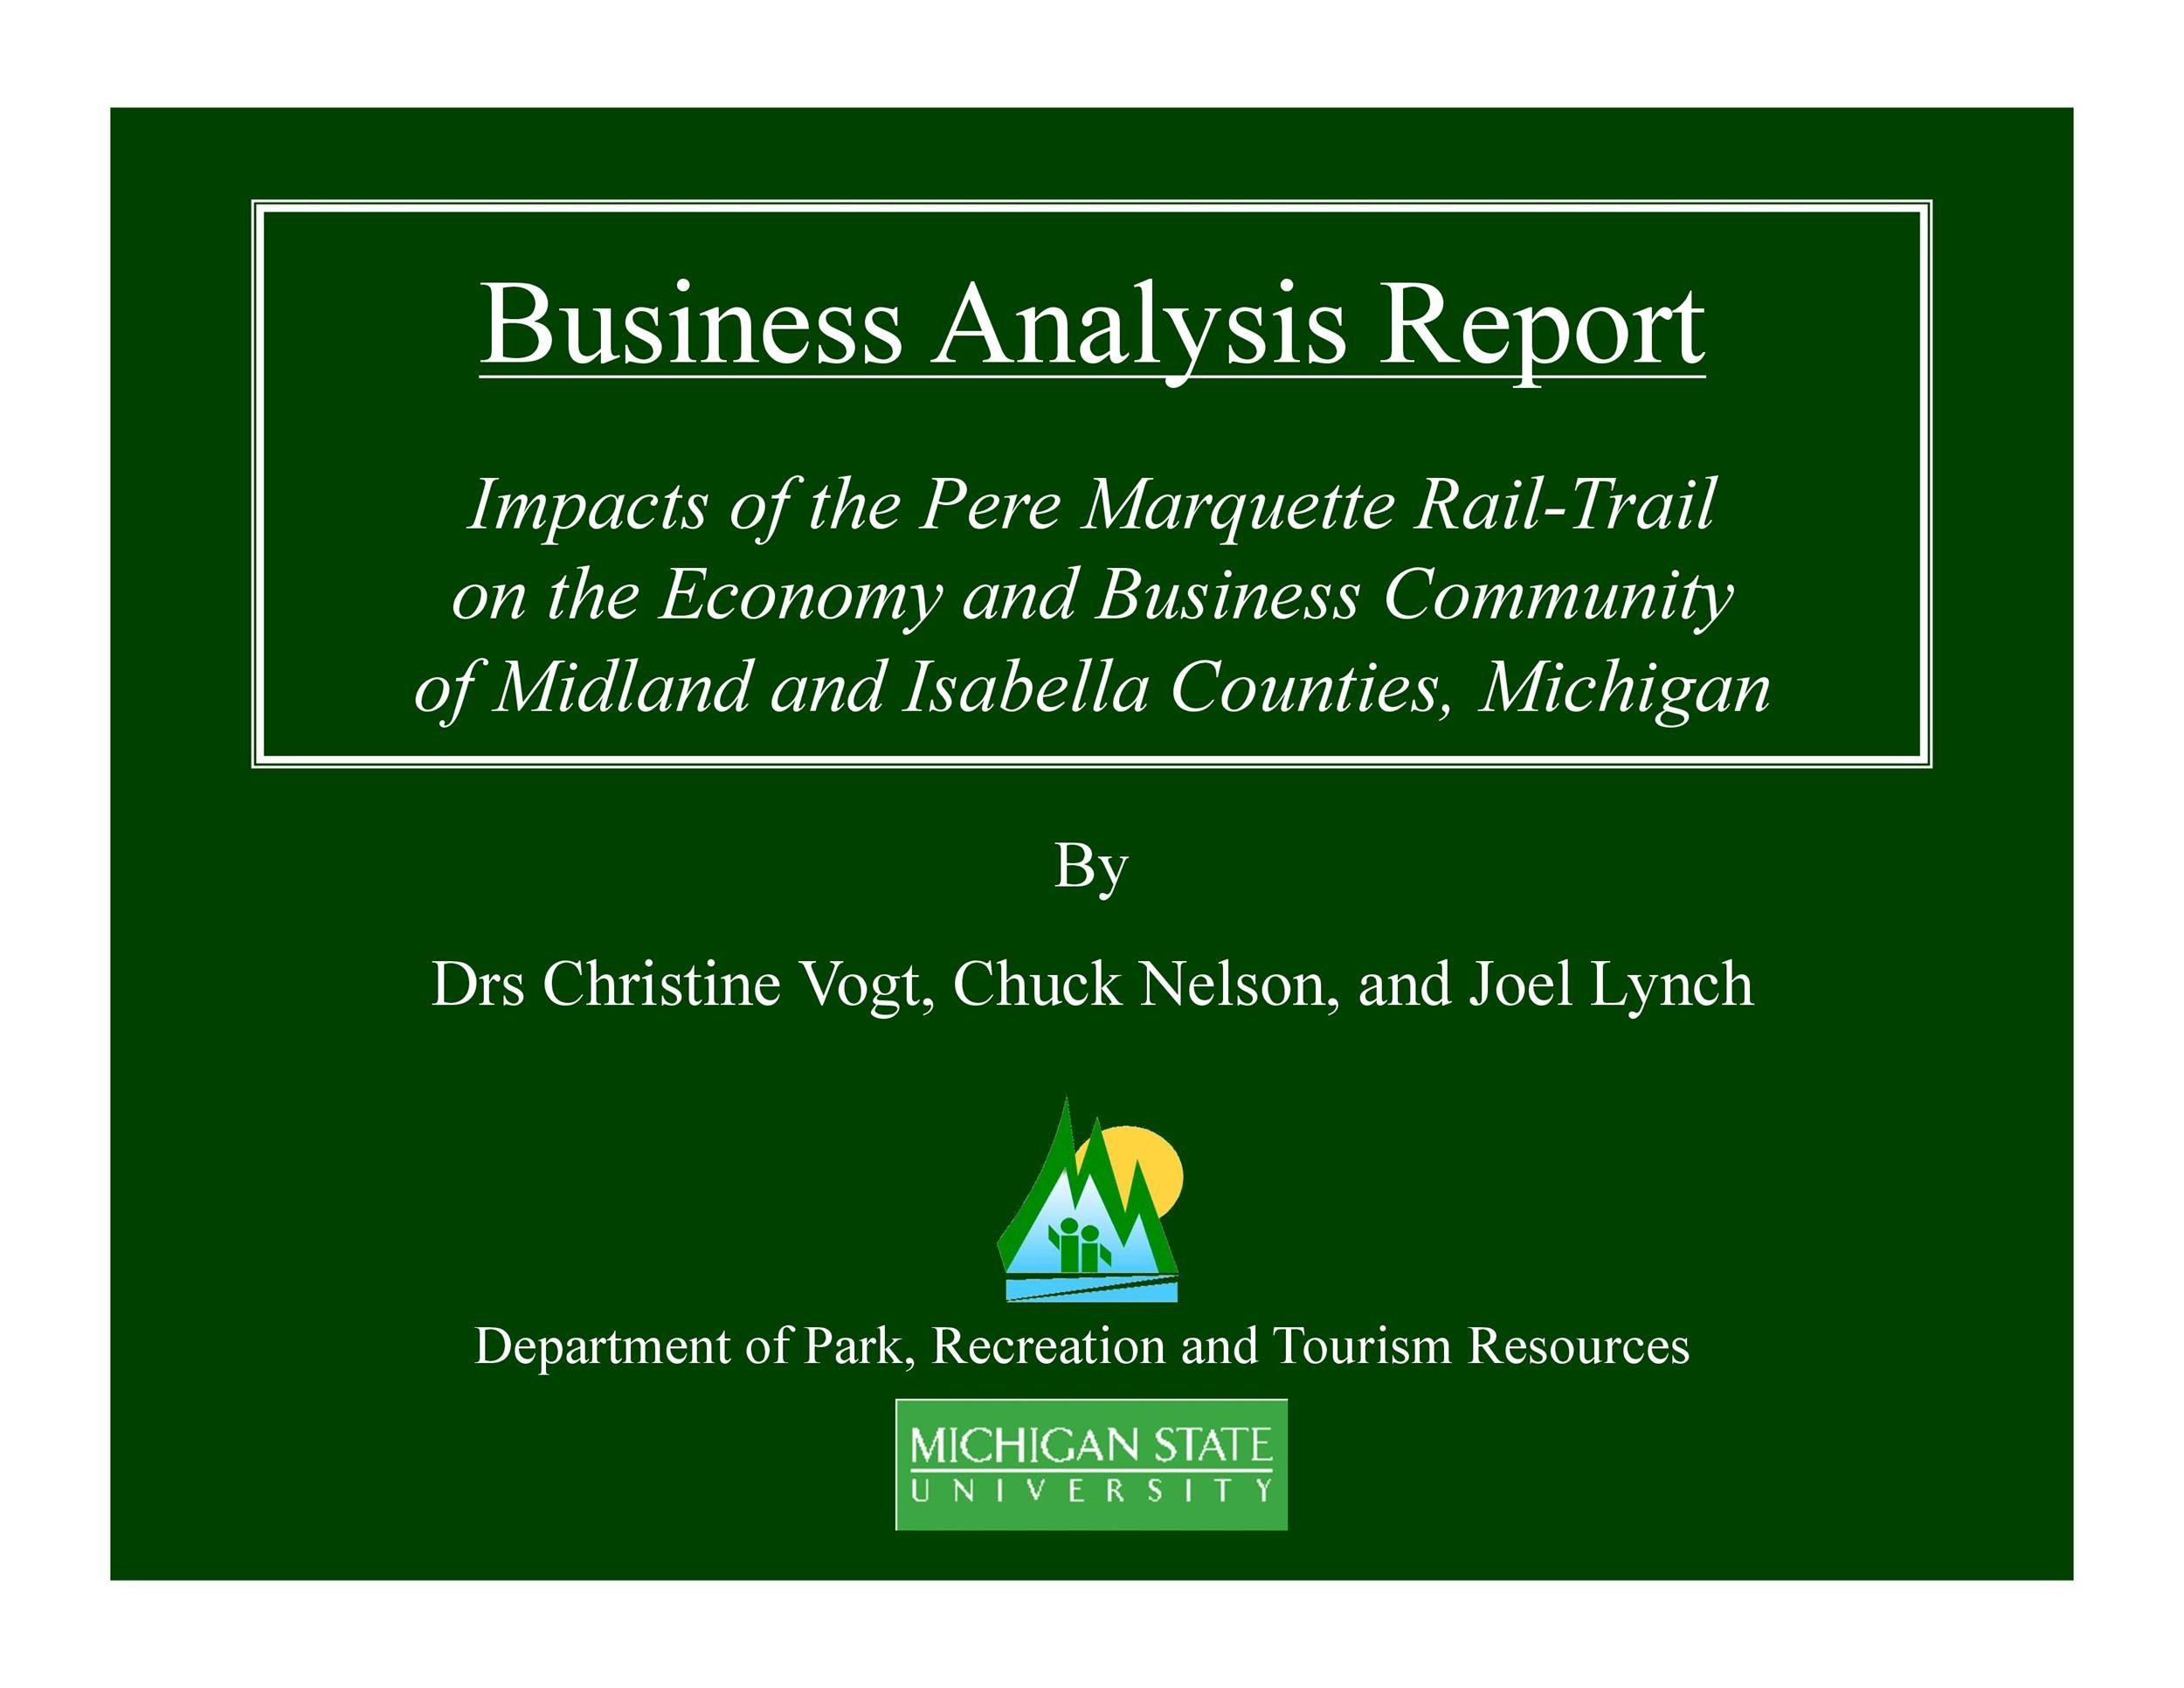 30+ Business Report Templates  Format Examples - Template Lab - business analysis report